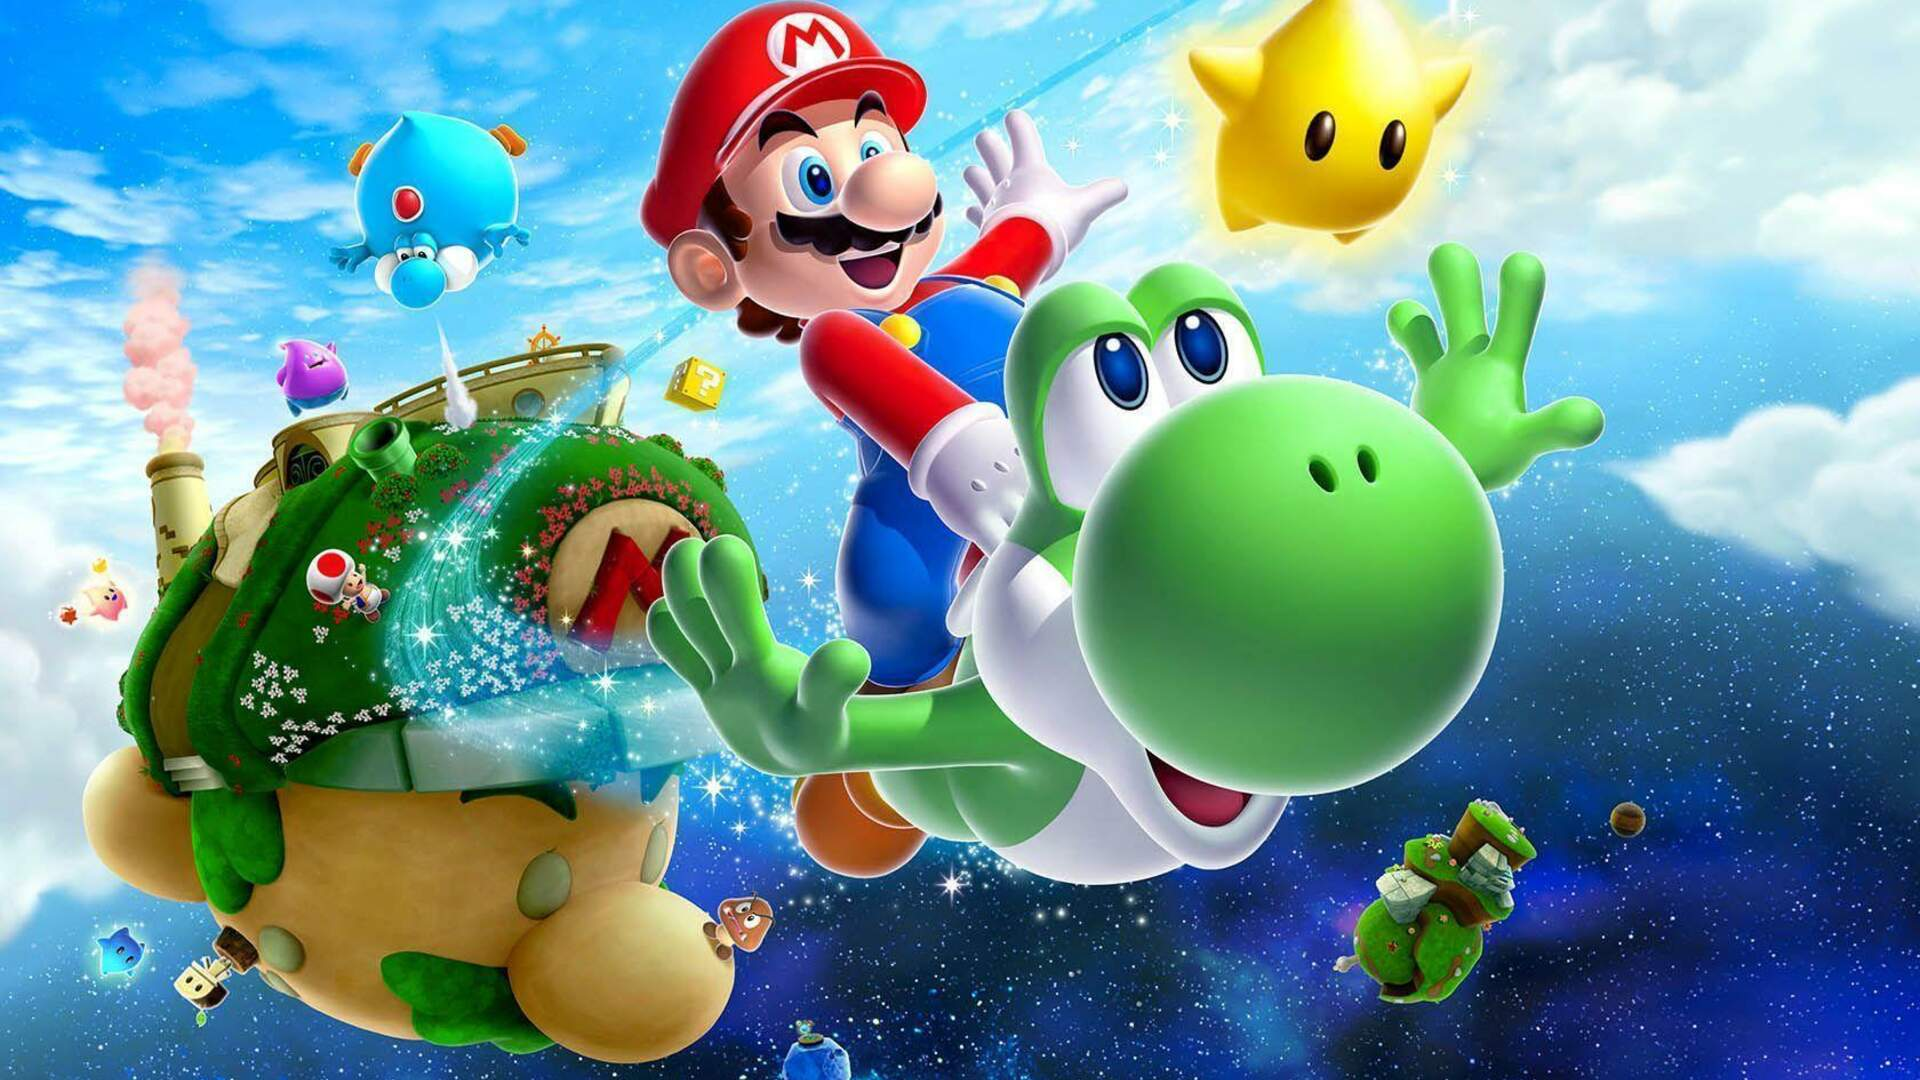 Could Super Mario Galaxy 3 Ever Hope to Top the First Two Games?